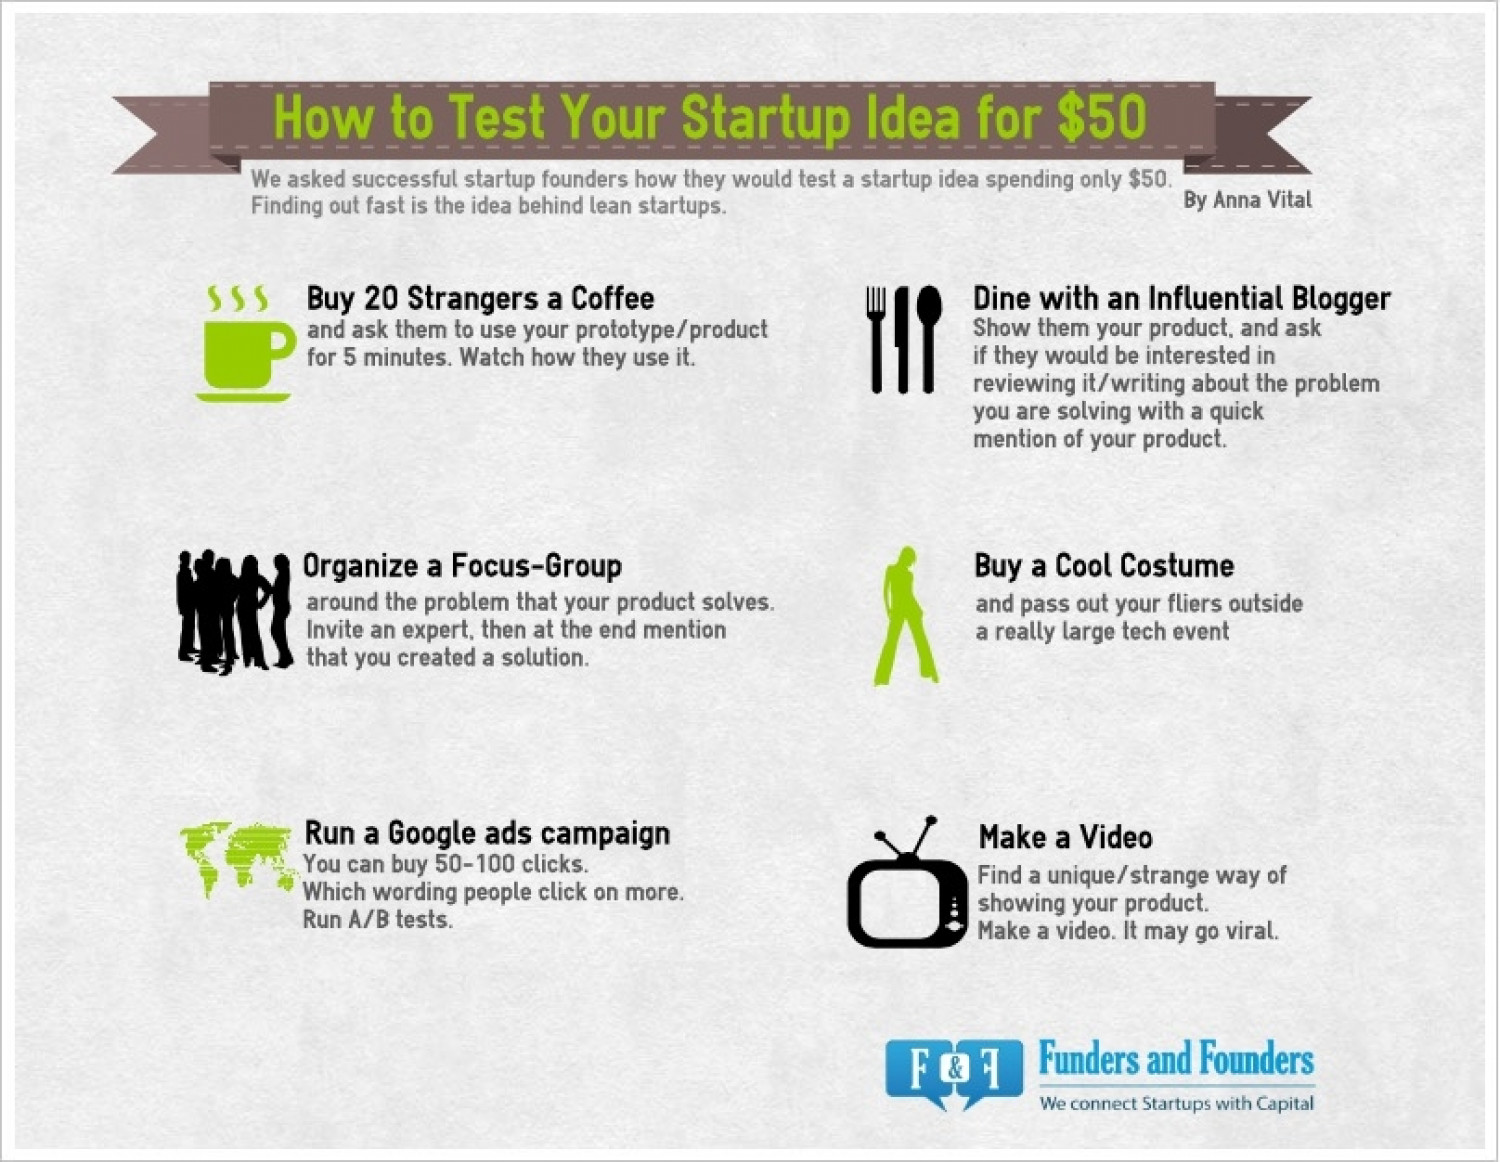 How to Test Your Startup Idea for $50 Infographic